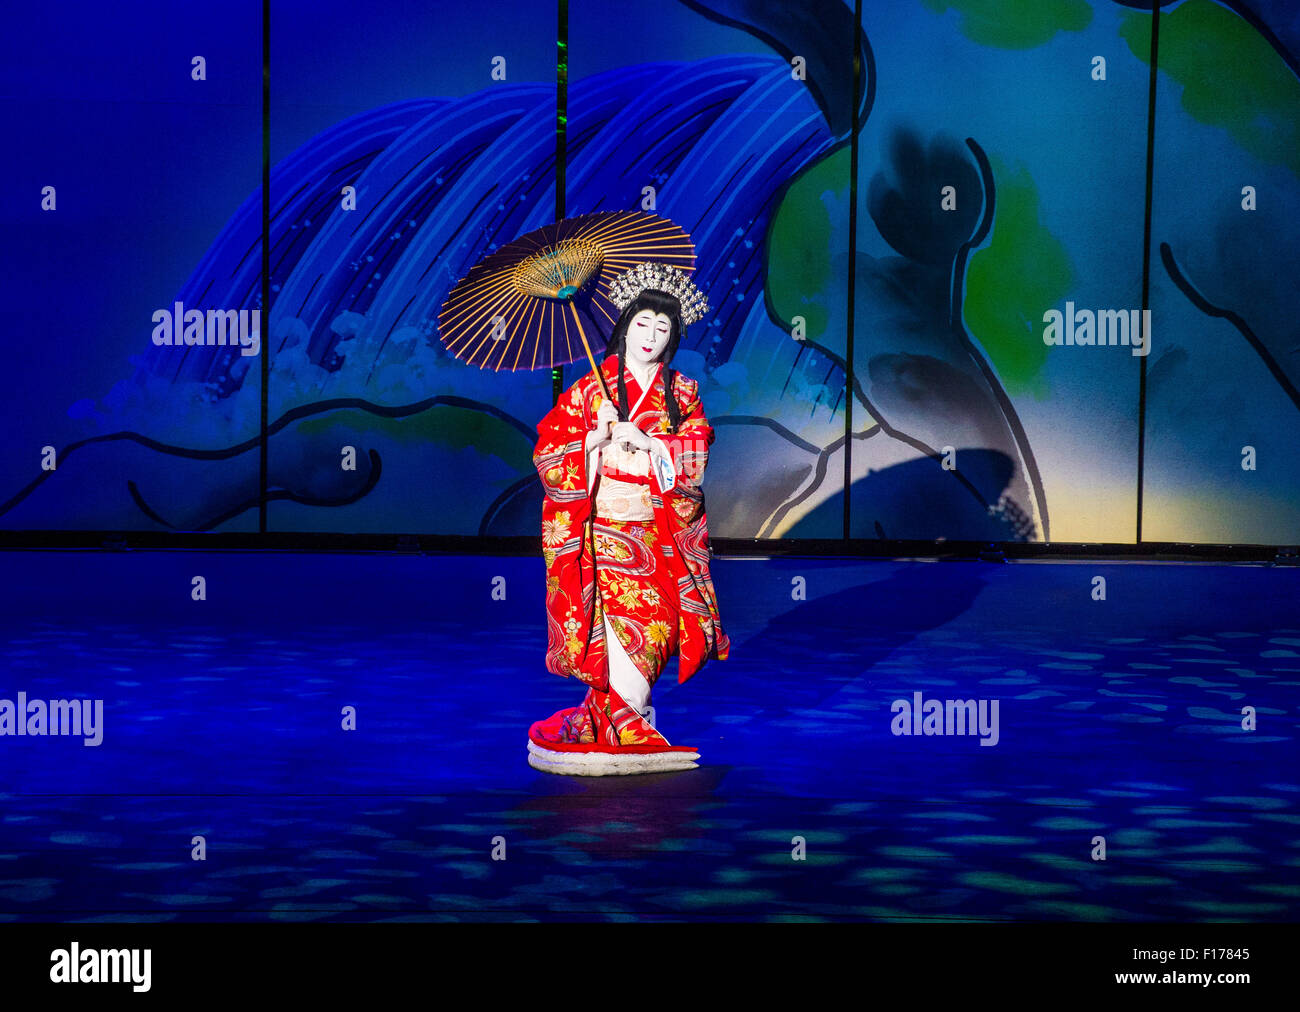 Traditional Japanese Kabuki performance in front of the Bellagio hotel and casino fountains in Las Vegas - Stock Image